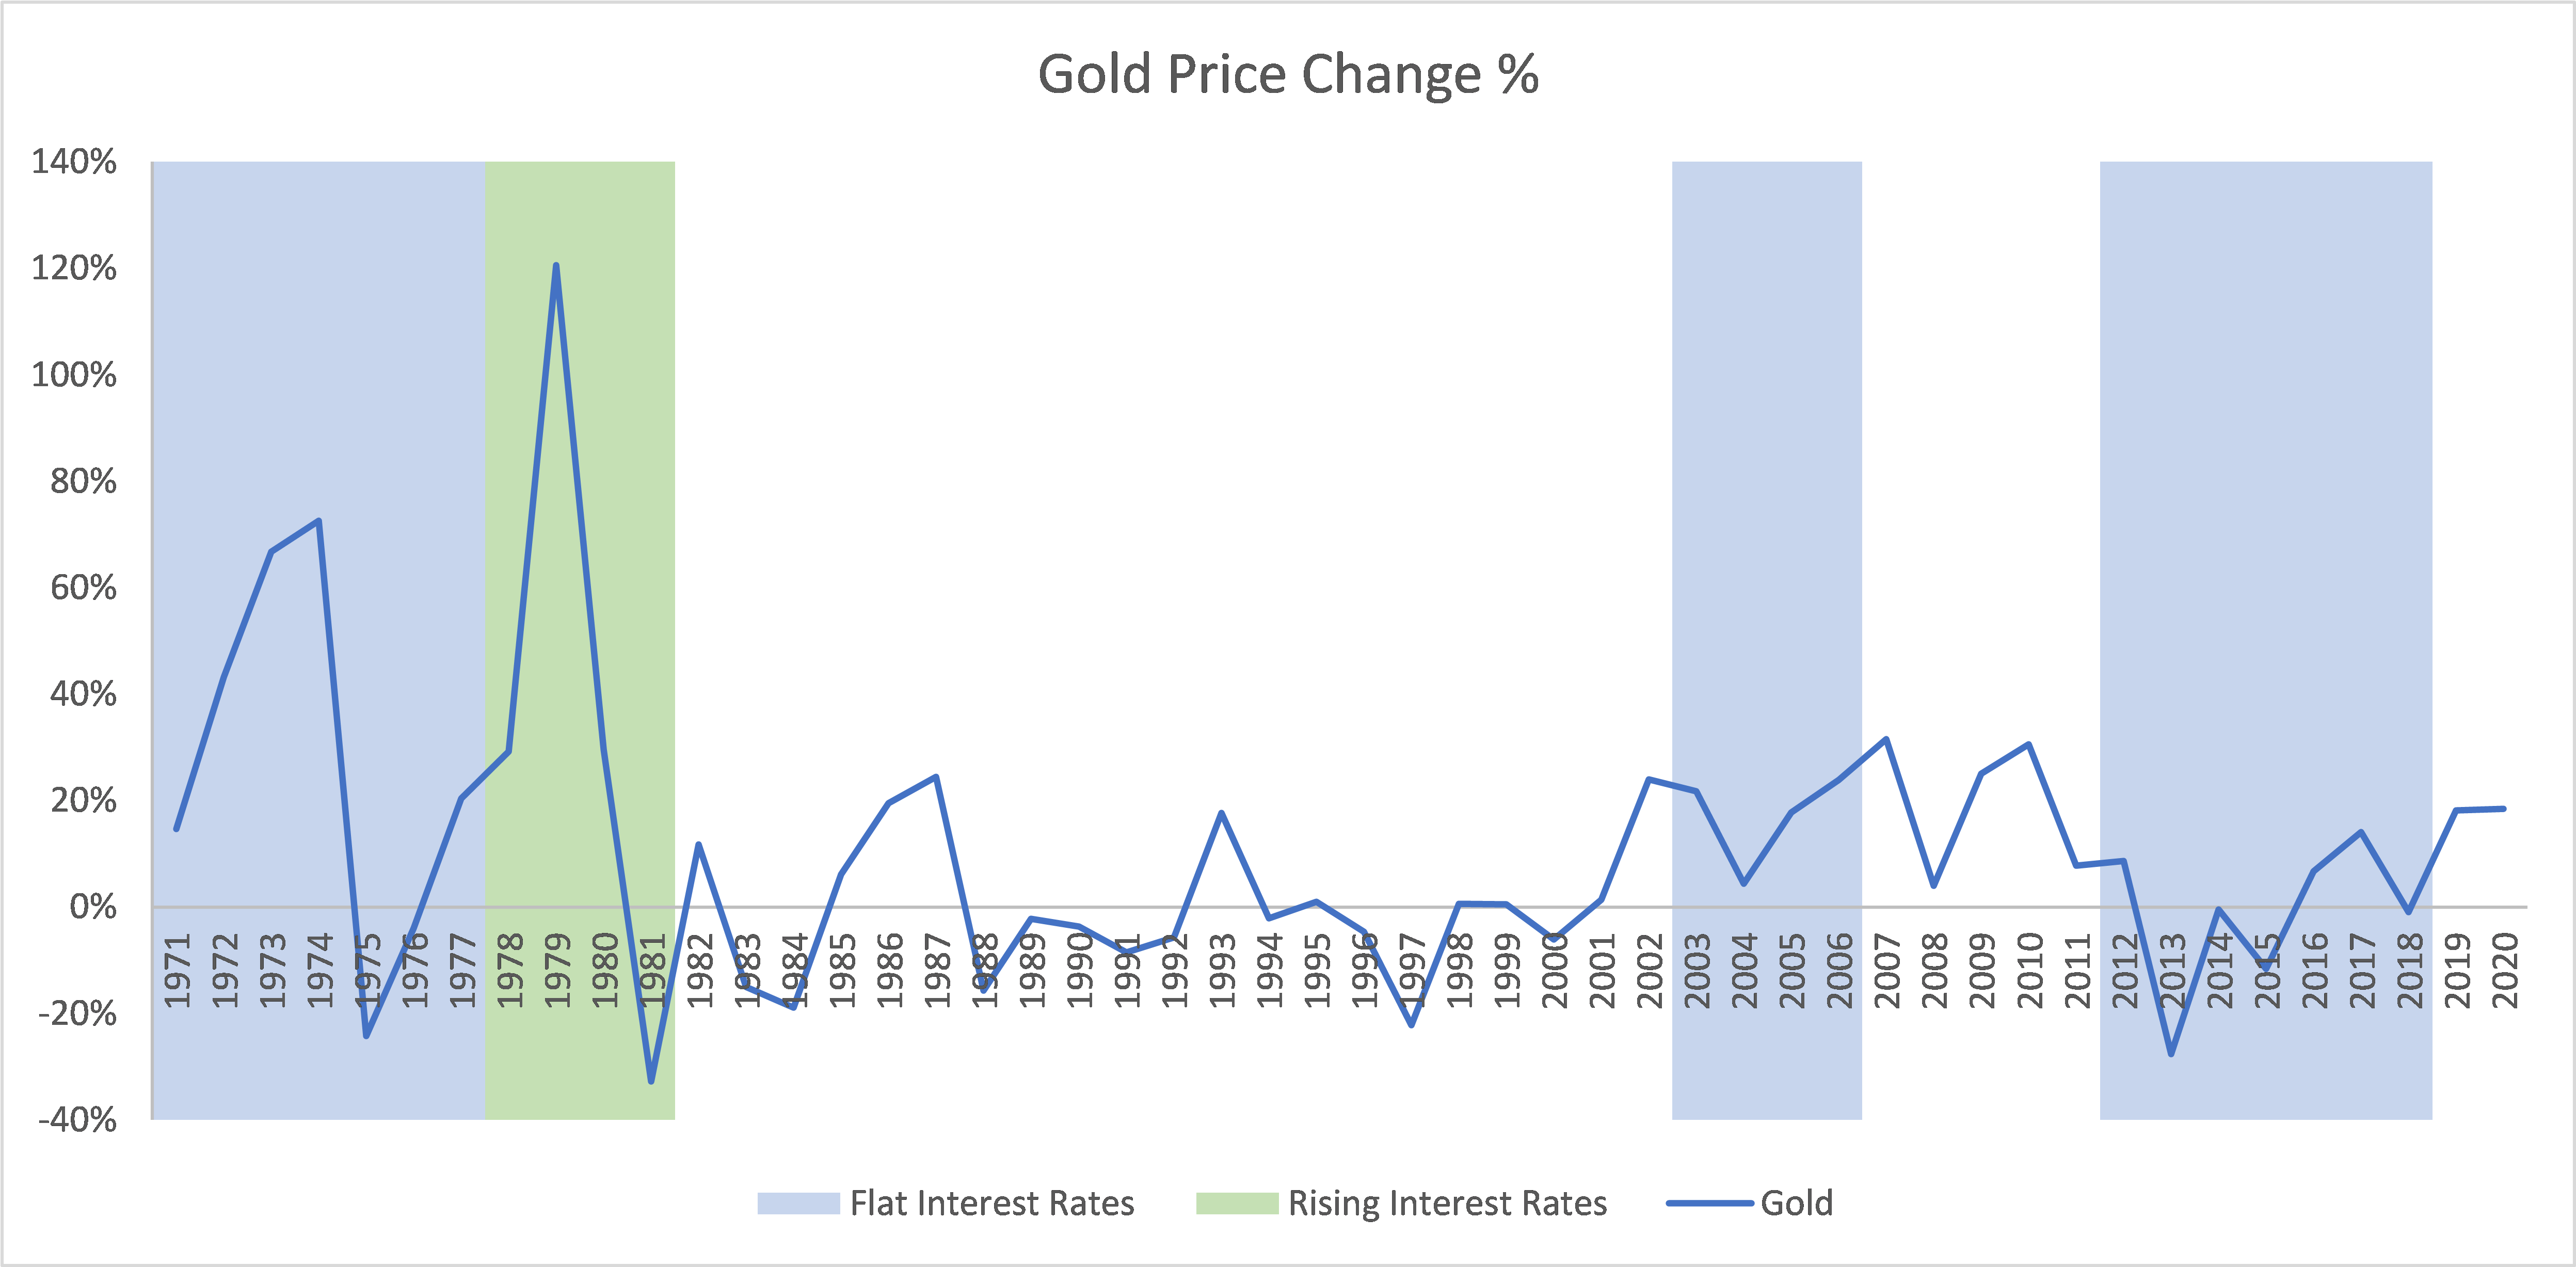 Gold prices increased in most years in which interest rates were flat or rising